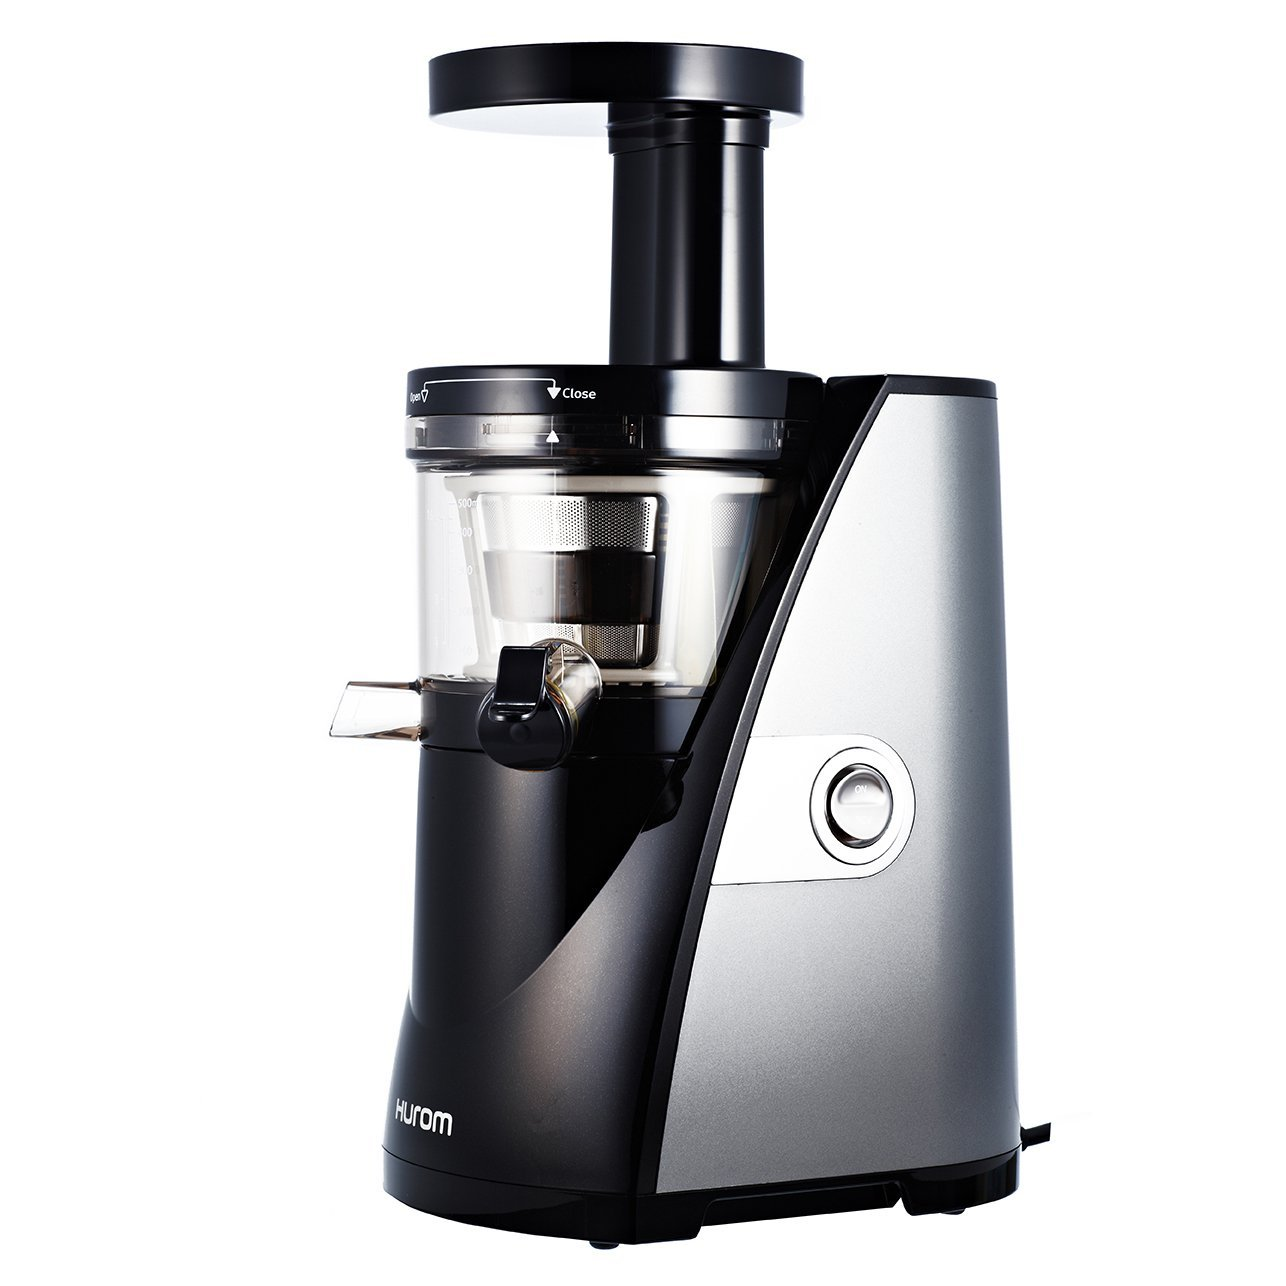 Hurom Slow Juicer Alternative : 5 Best Hurom Juicer Reviews UPDATED: 2018 The Home Savant